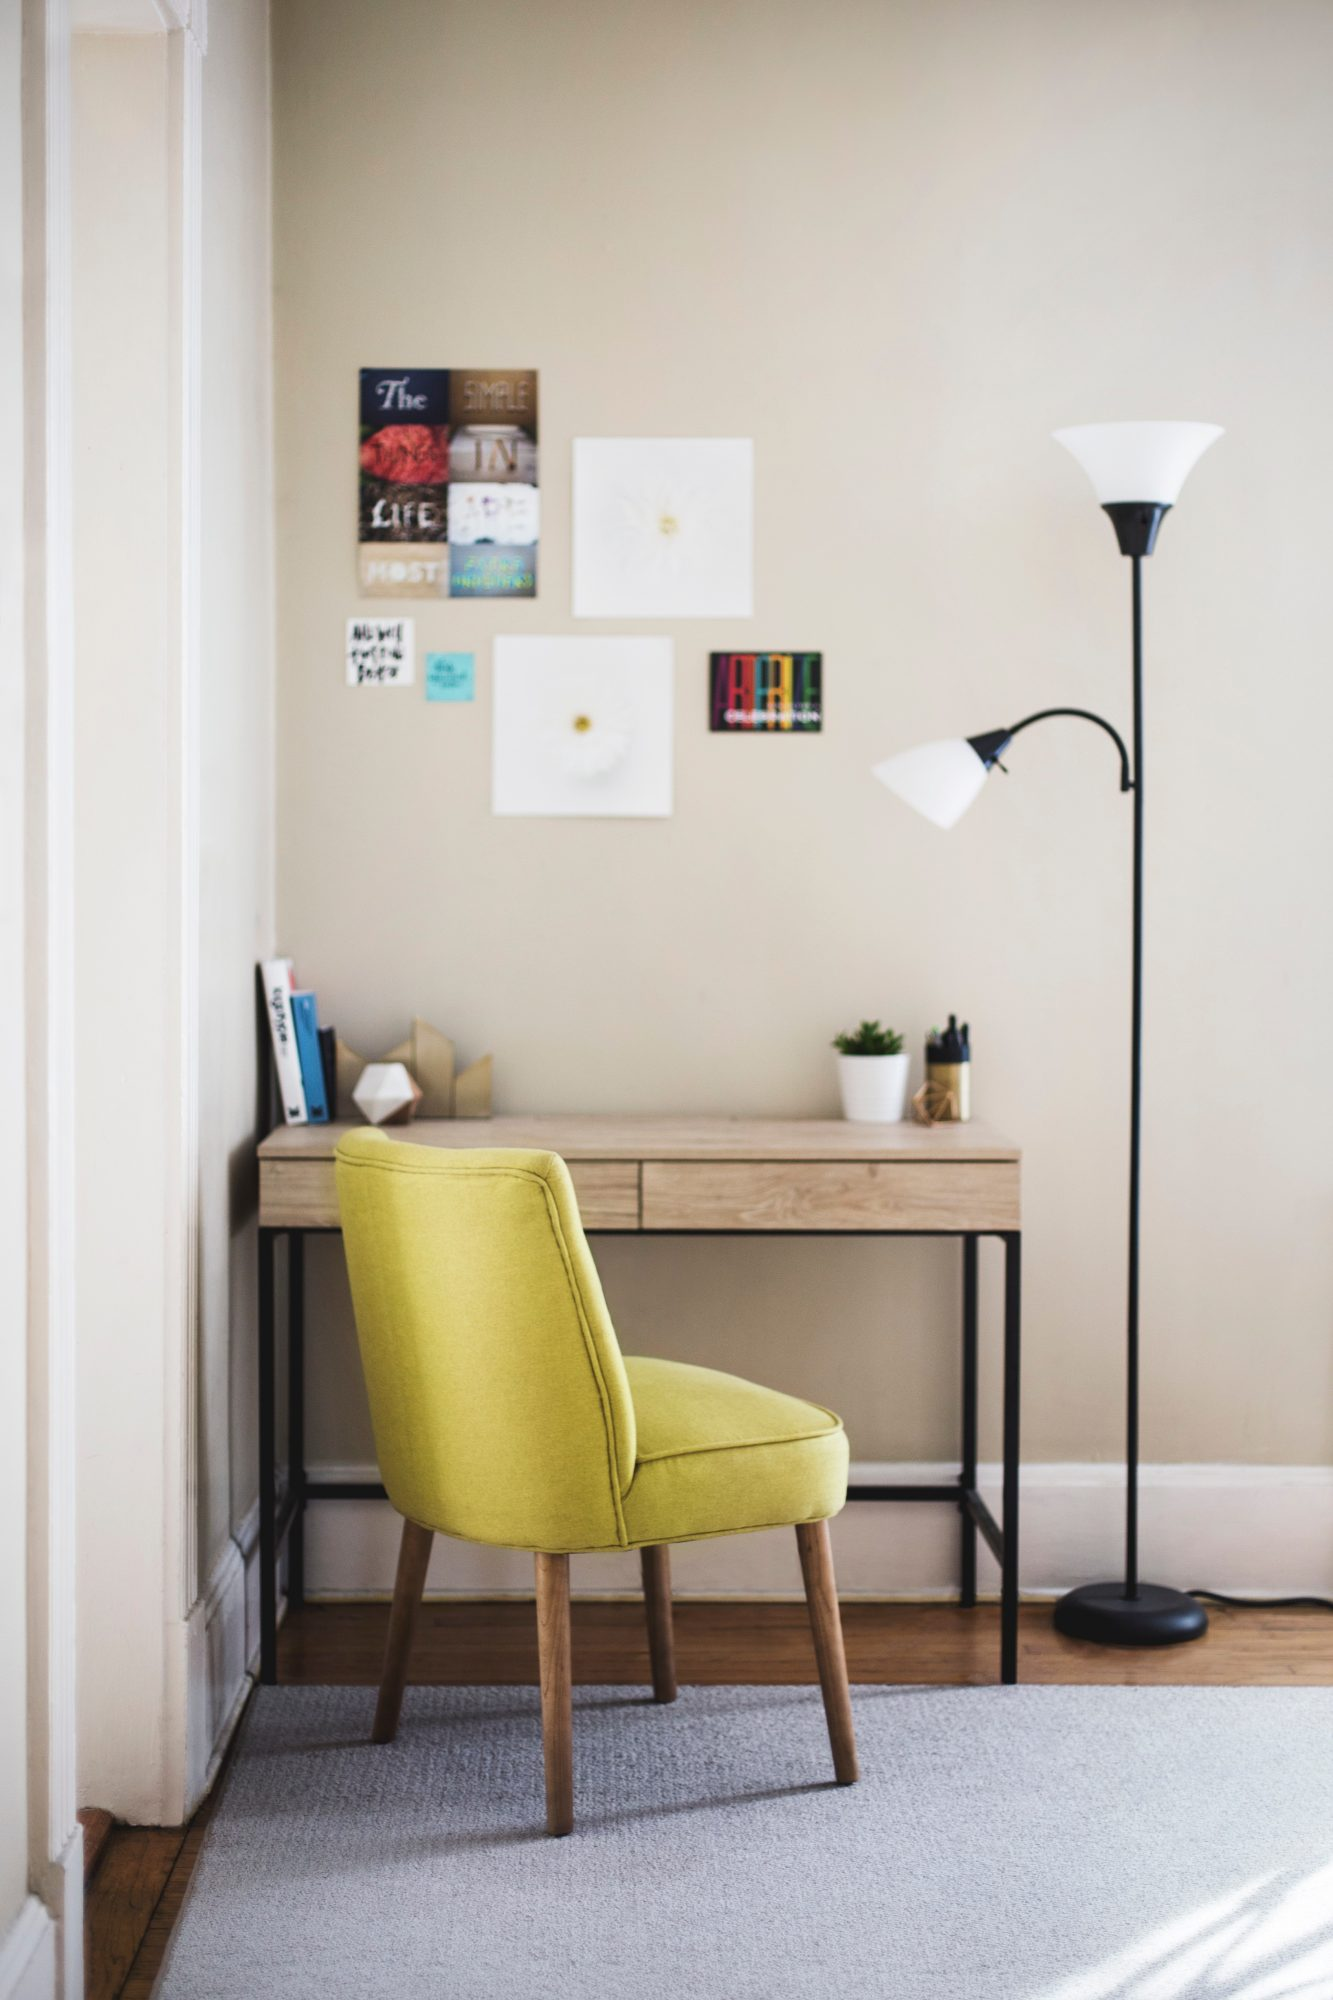 Home Office Room Design: 17 Surprising Home Office Ideas